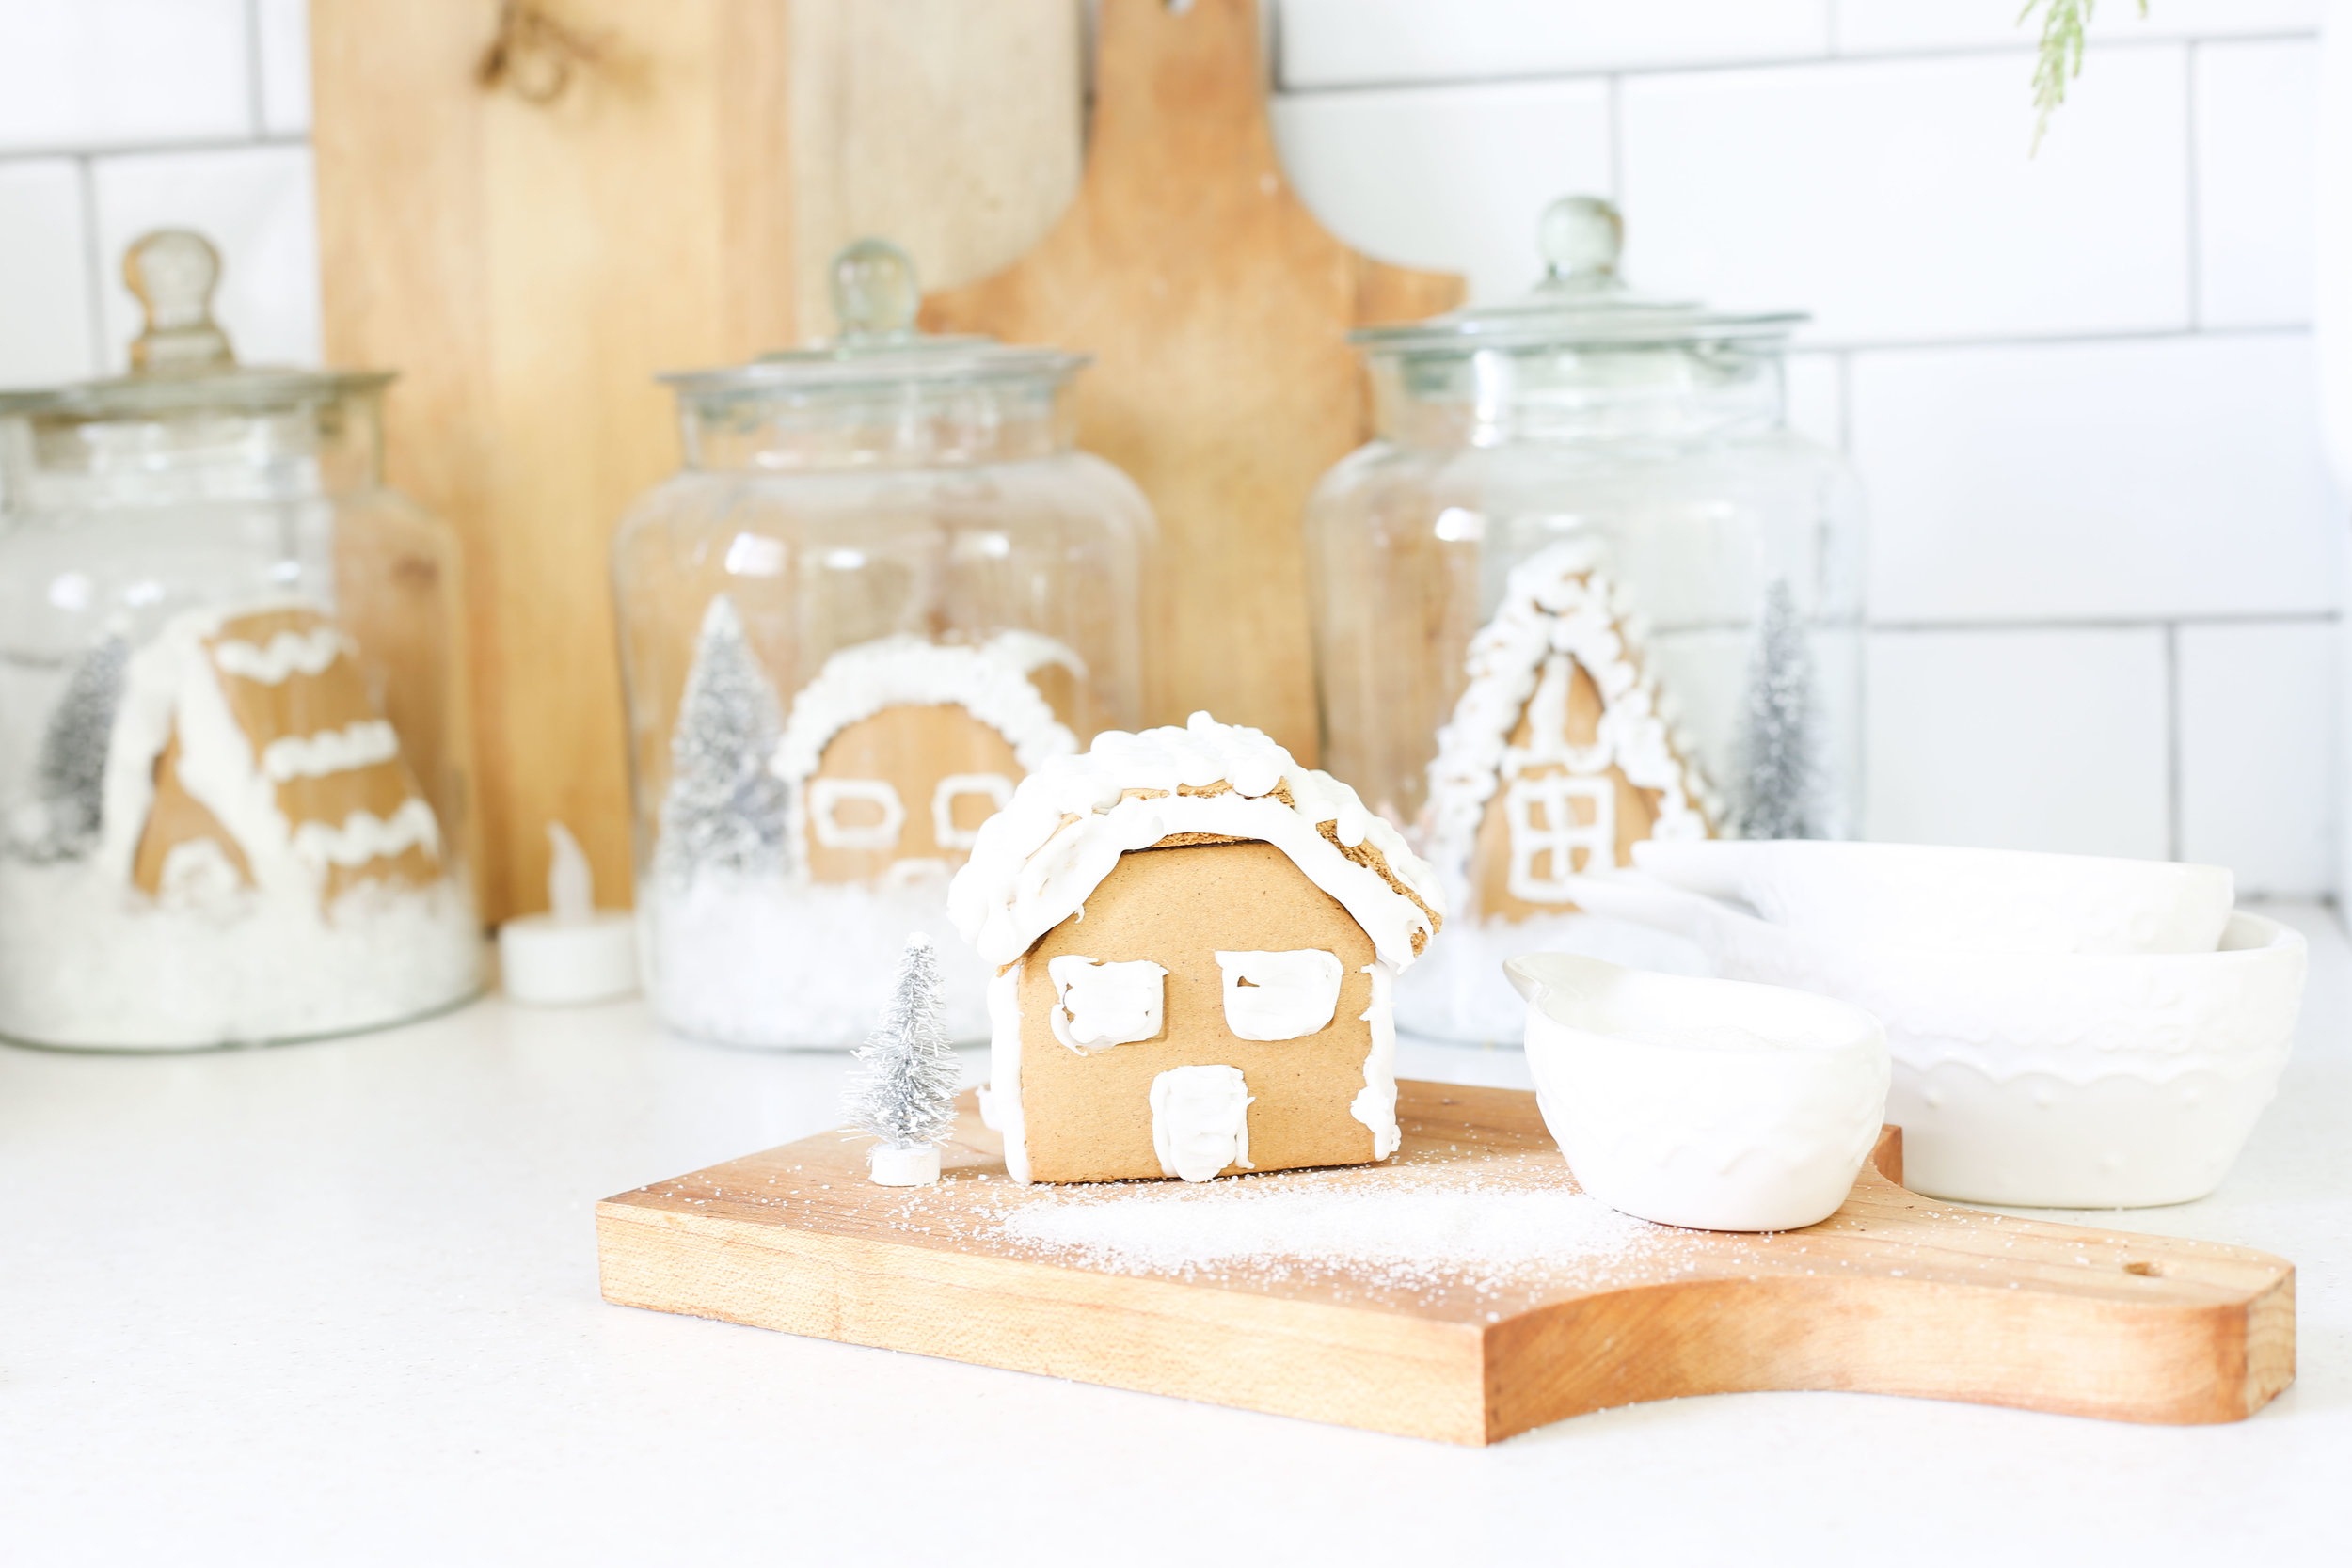 Christmas 2017 Home Tour: Deck The Blogs- Kitchen Decor with Gingerbread Houses in Jars- Plum Pretty Decor & Design's Christmas Home Tour